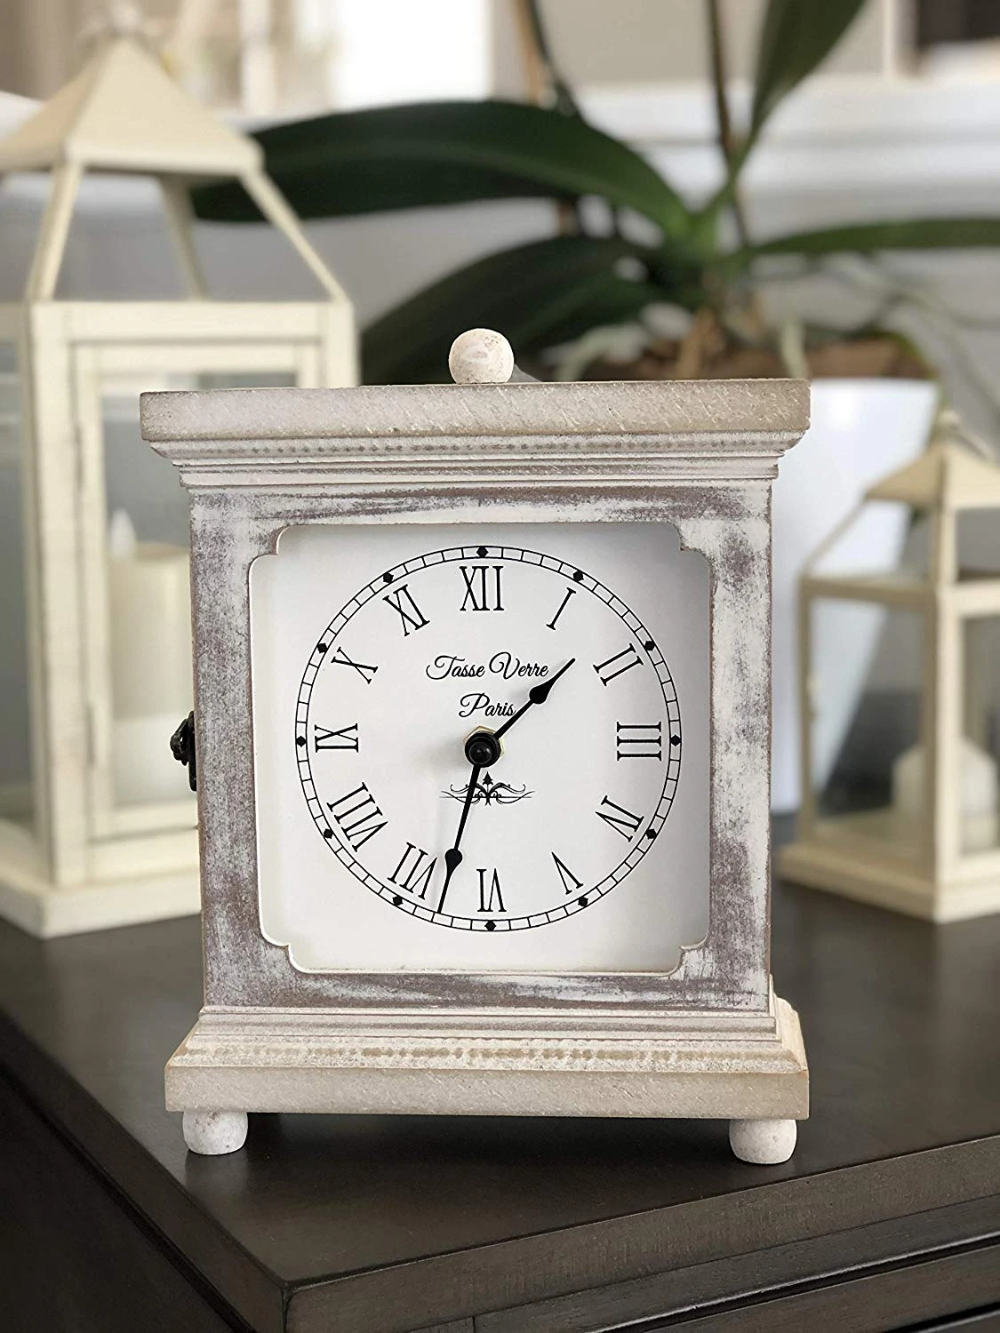 Rustic Wood Clock For Shelf Table Or Desk 9 X7 Farmhouse Decor Distressed White Washed Mechanical Powered For Office Bedroom Fireplace Mantel Living Family In 2020 Rustic Wood Clocks Wood